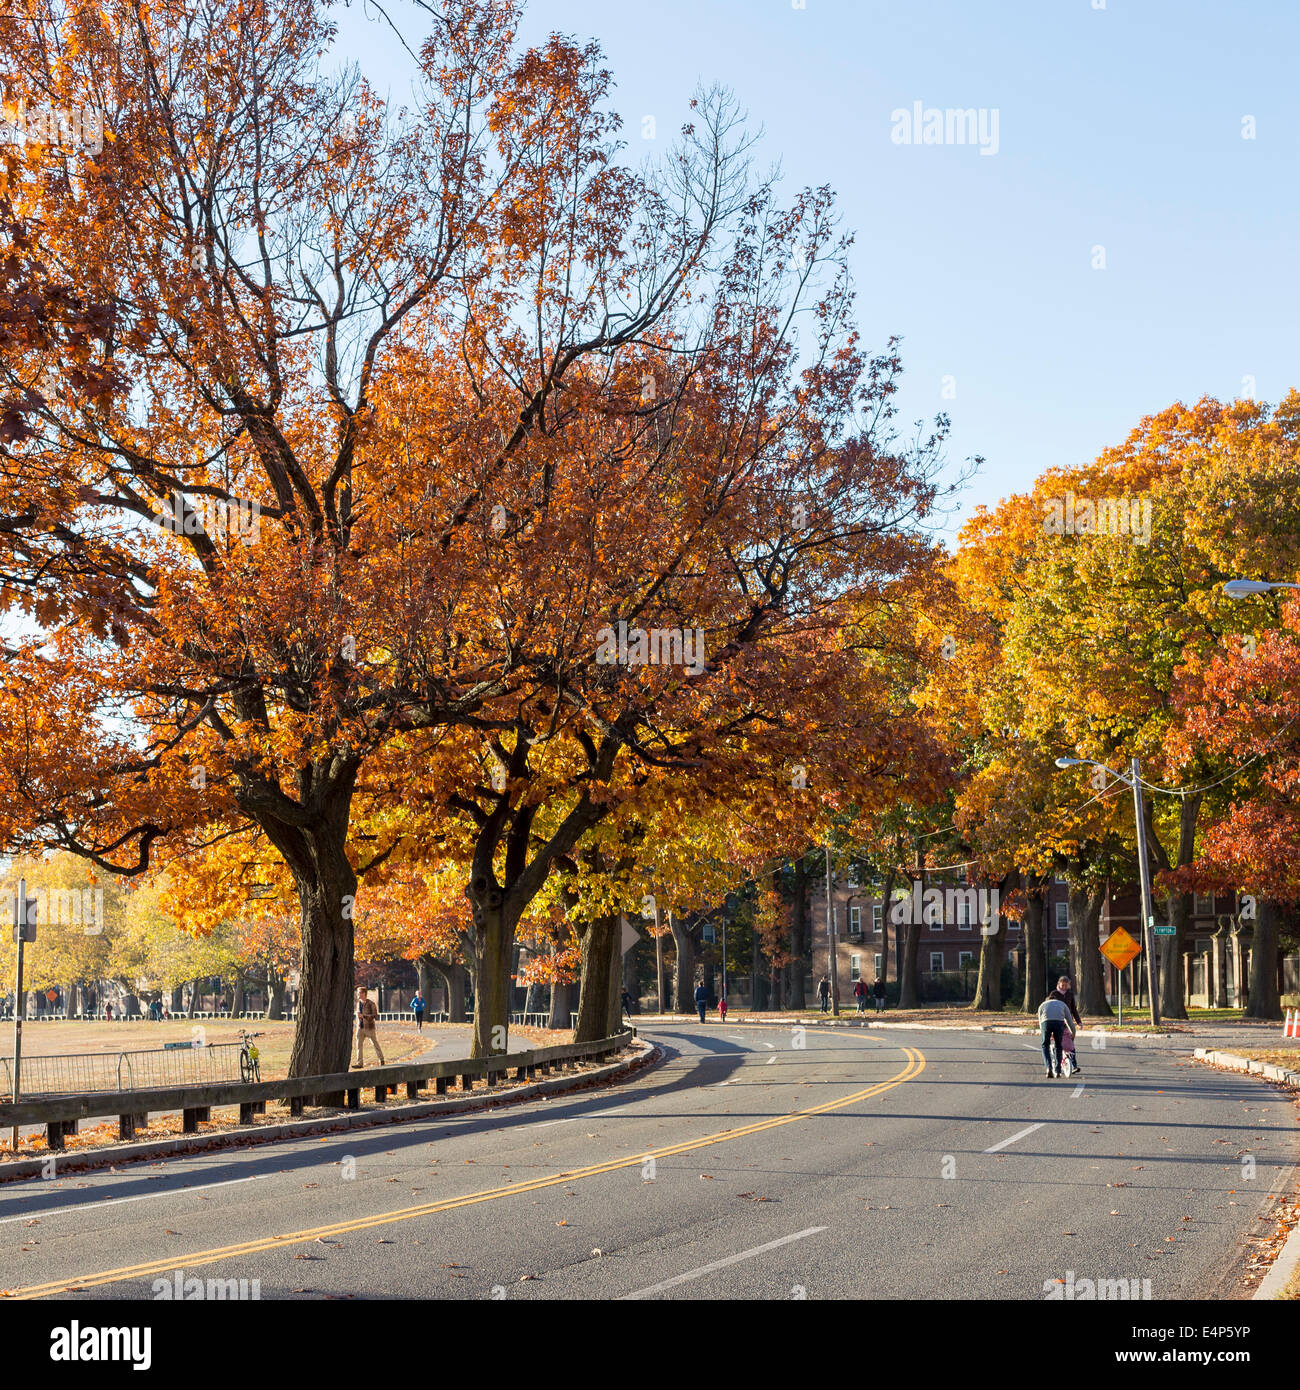 Colorful fall leaves on a sunny day near Harvard University campus in Cambridge, MA, USA in November 2013. Stock Photo